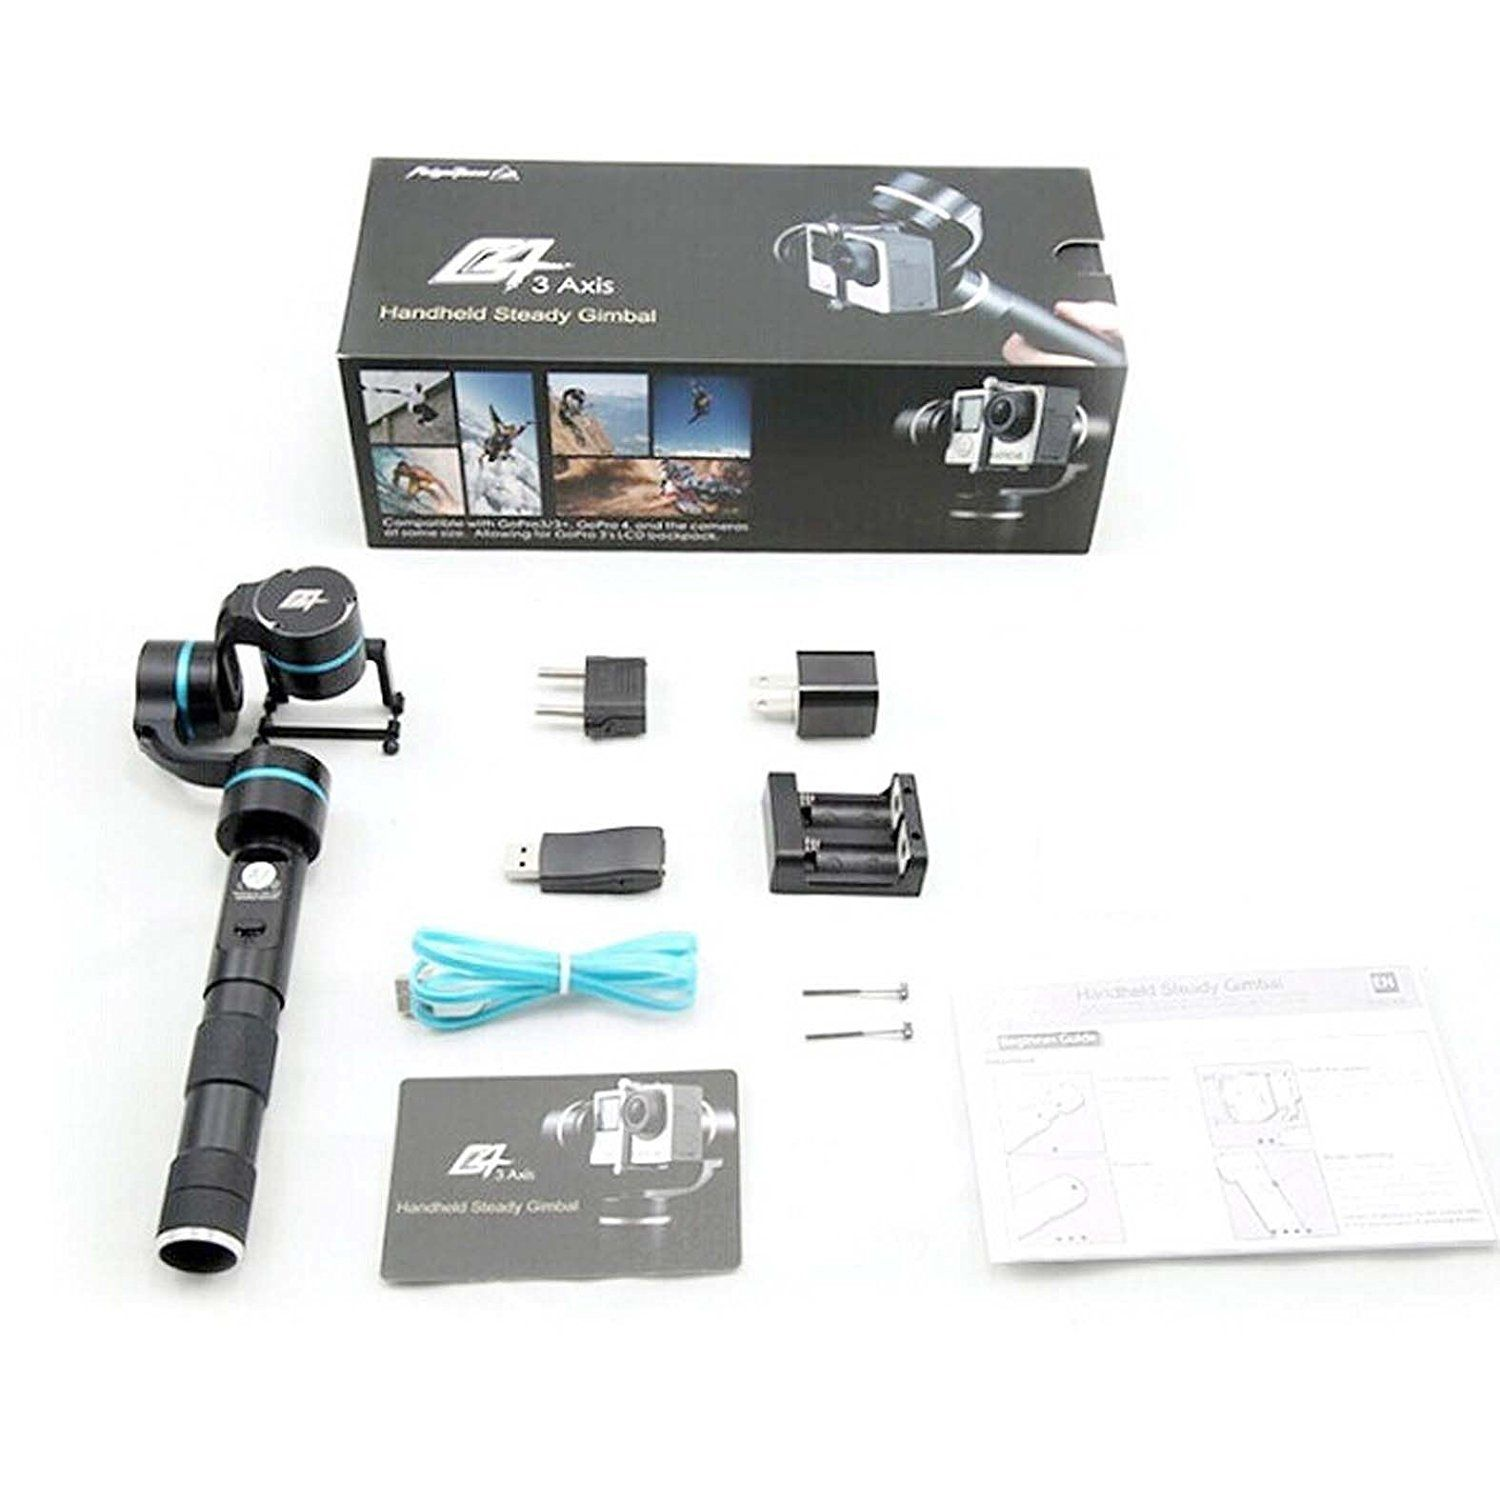 Feiyu FY-G4 Ultra 3-Axis Handheld Gimbal Stabilizer for Gopro Hero 4 /Hero 3 / Action Cameras feiyu tech fy g4s 3 axis 360 degree handheld steady gimbal for gopro hero 3 3 4 tv59